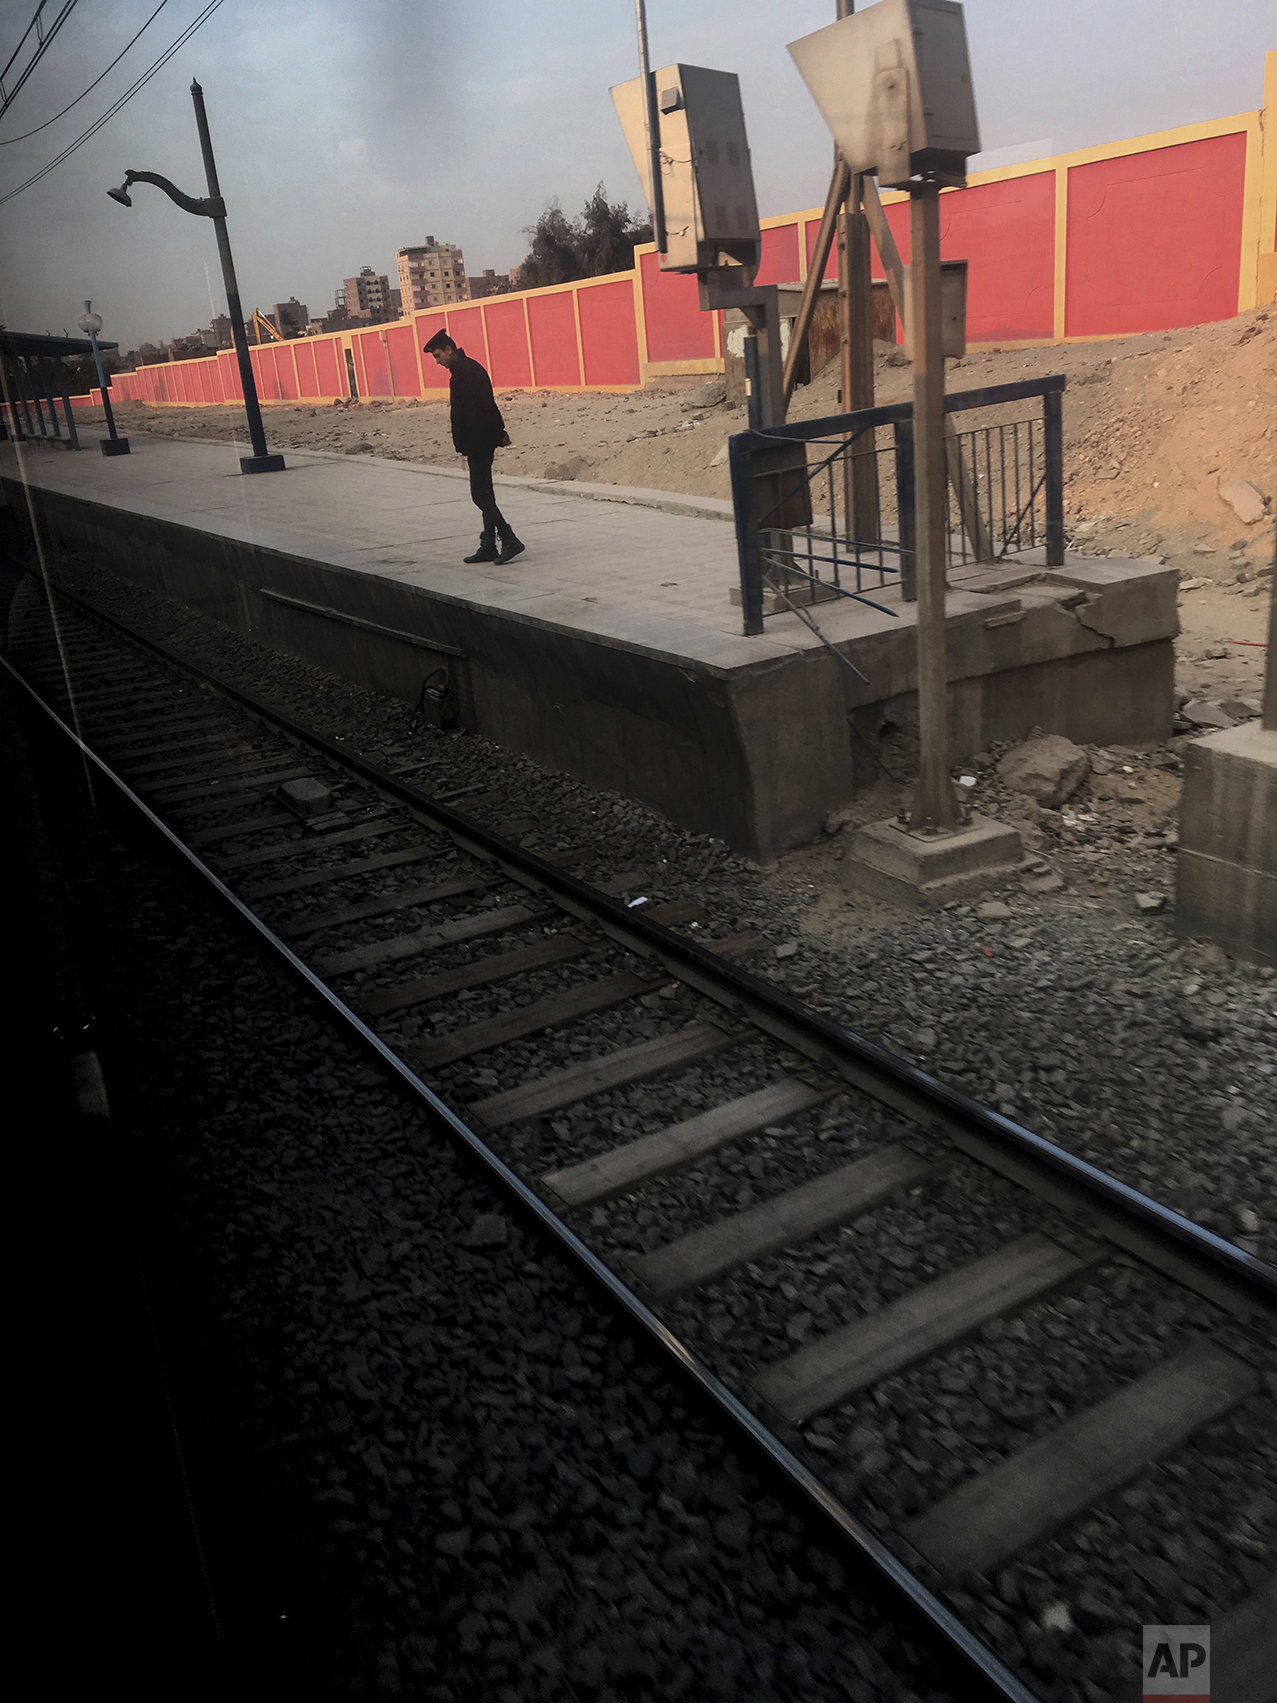 In this Feb. 1, 2017 photo, an Egyptian security stands guard at a metro station, in Cairo, Egypt. (AP Photo/Nariman El-Mofty)